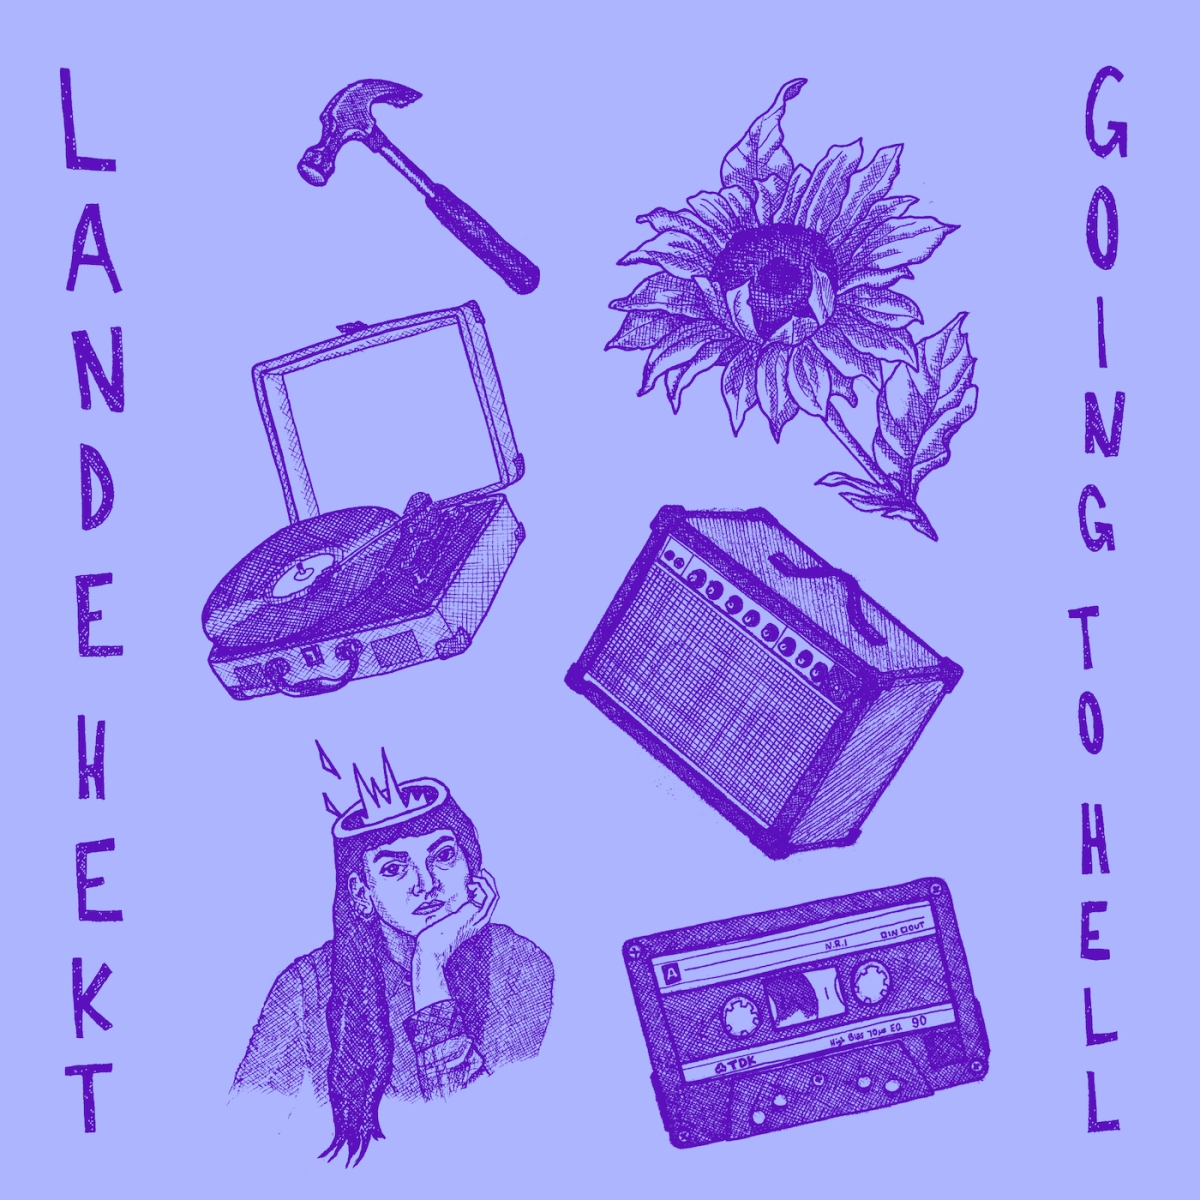 Review: Lande Hekt – Going To Hell